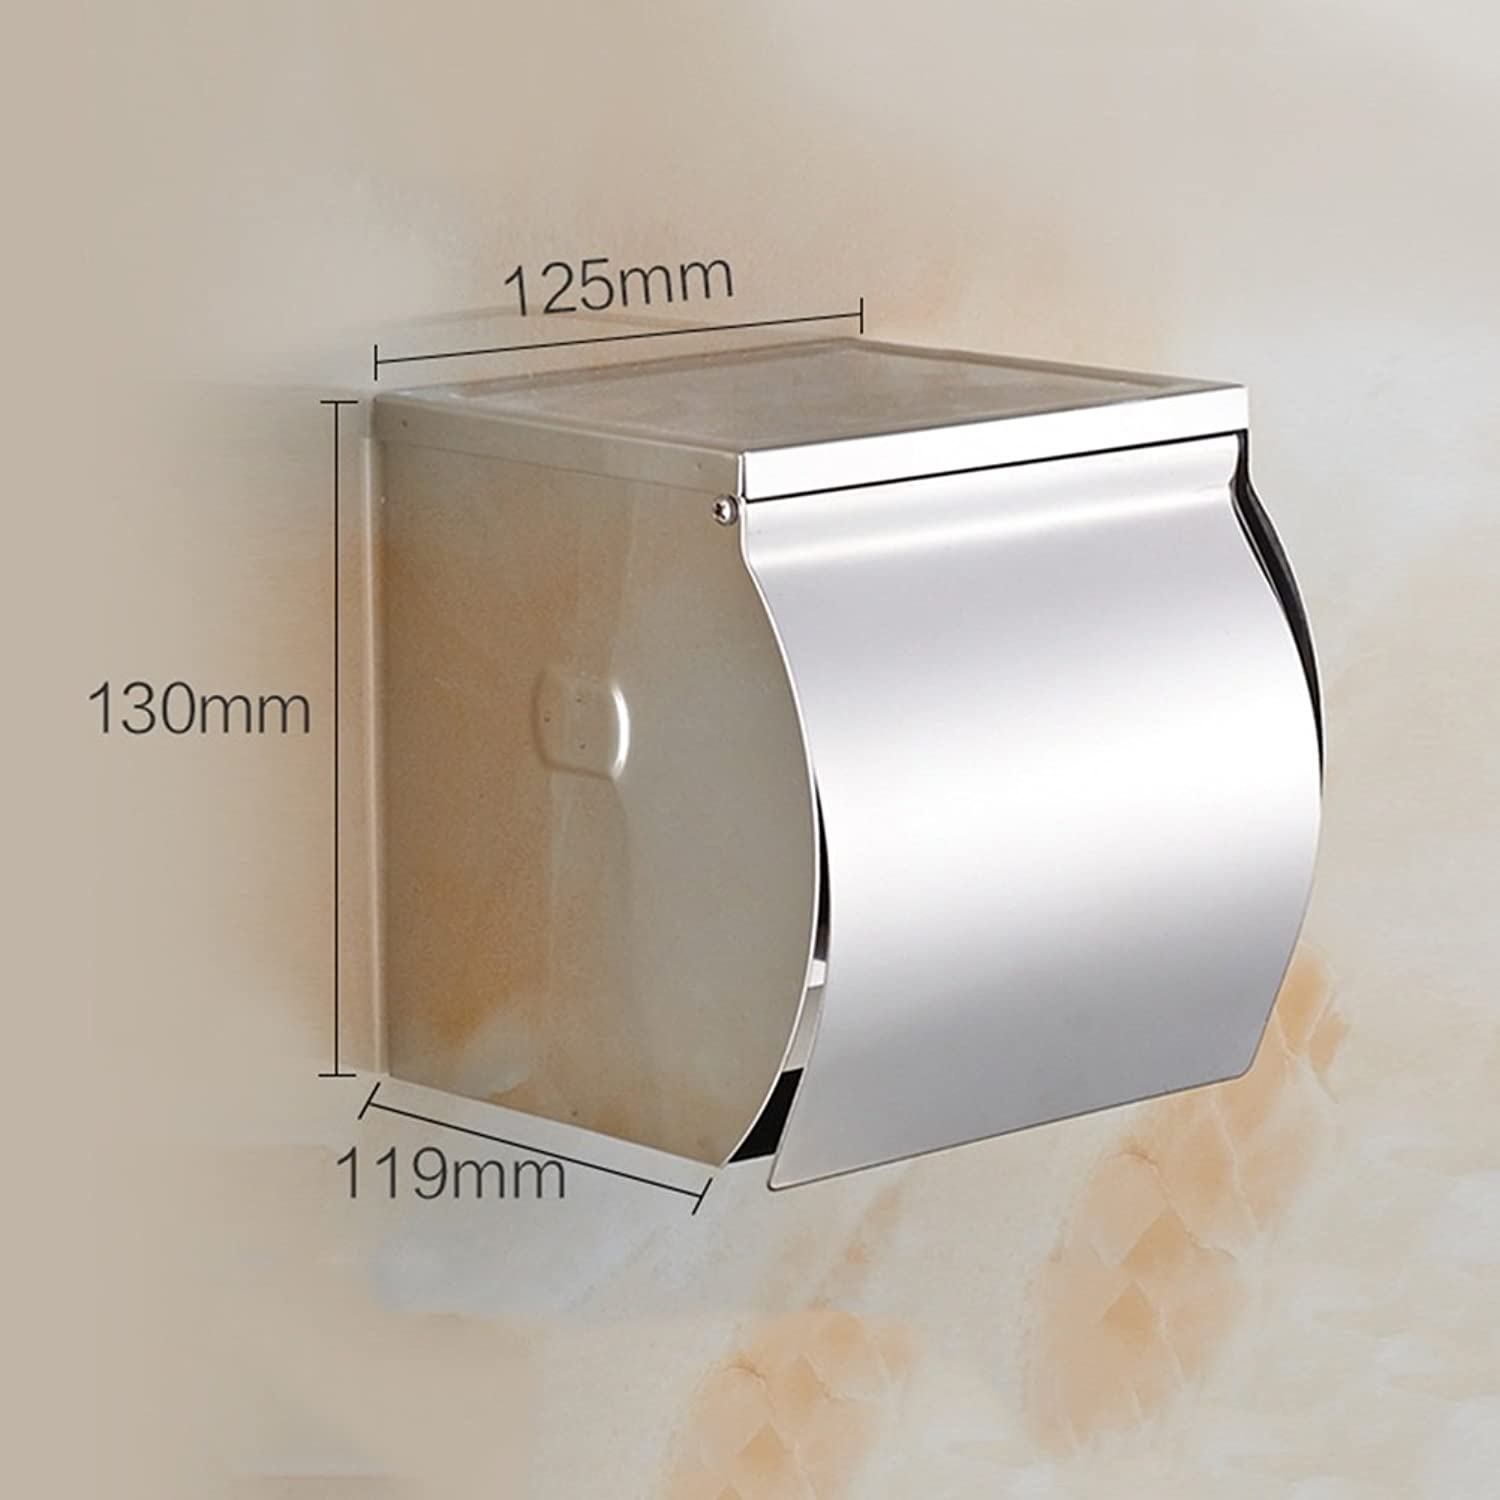 WENZHE Over Toilet Bathroom Toilet Roll Holder Storer Wall Mounted Tissue Box Waterproof Clamshell Stainless Steel, 4 Sizes Storage Racks Unit (color   B-125  119  130mm)